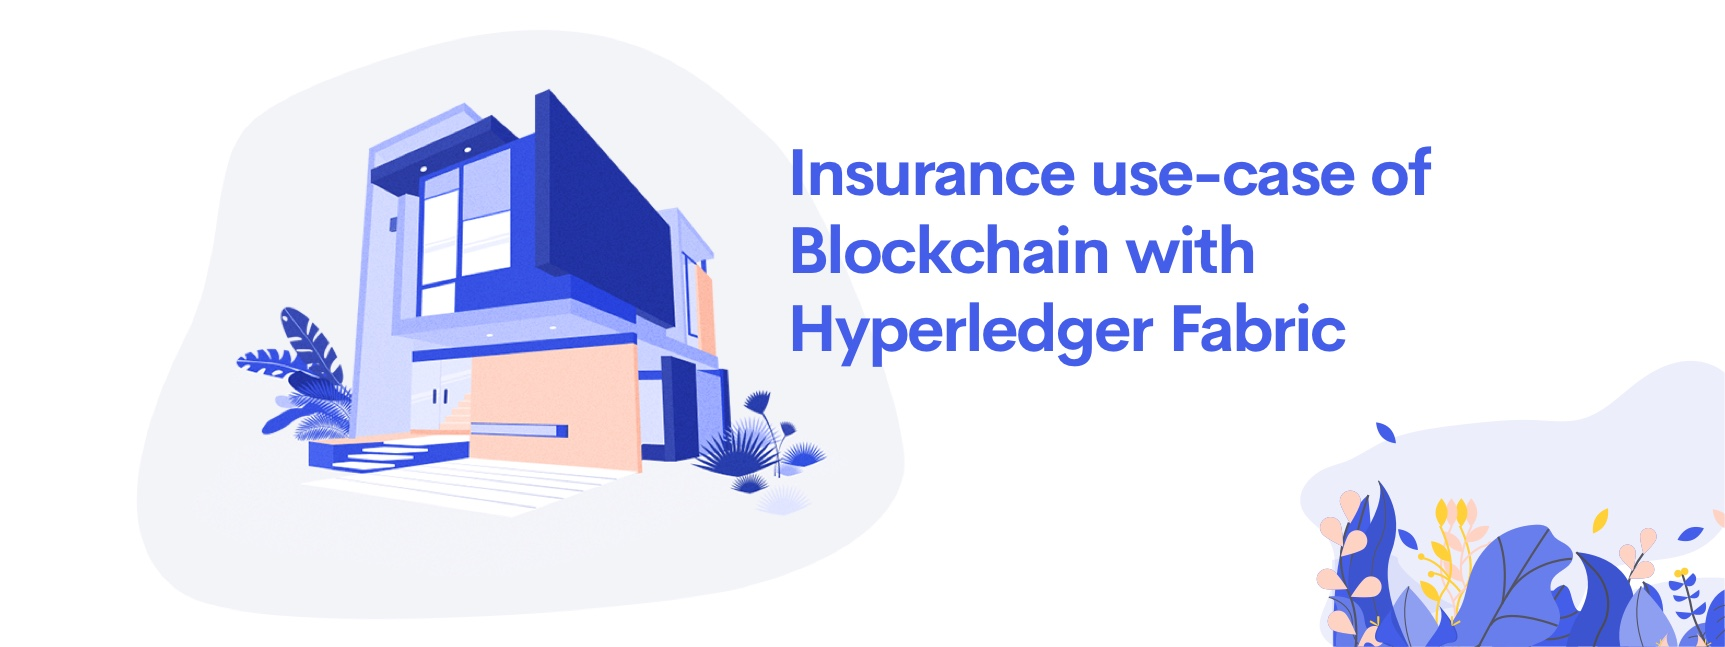 Redefining The Insurance Industry With Blockchain Using Hyperledger Fabric